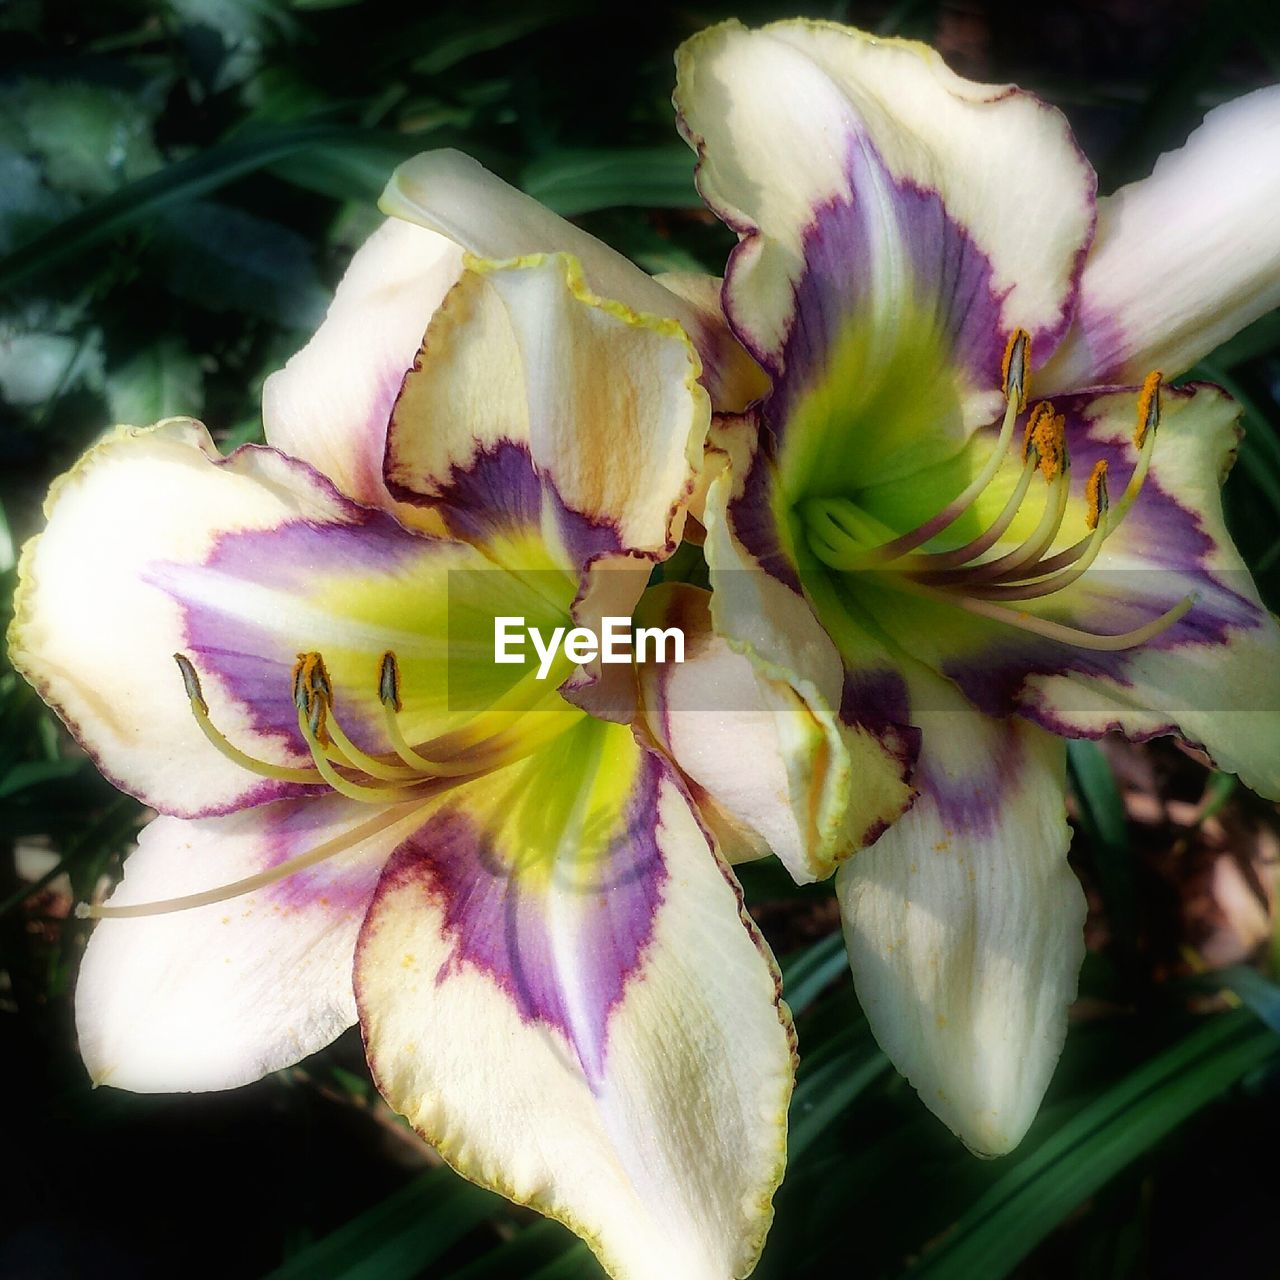 flower, petal, beauty in nature, fragility, freshness, growth, nature, flower head, springtime, botany, selective focus, blossom, no people, close-up, plant, stamen, day, outdoors, day lily, blooming